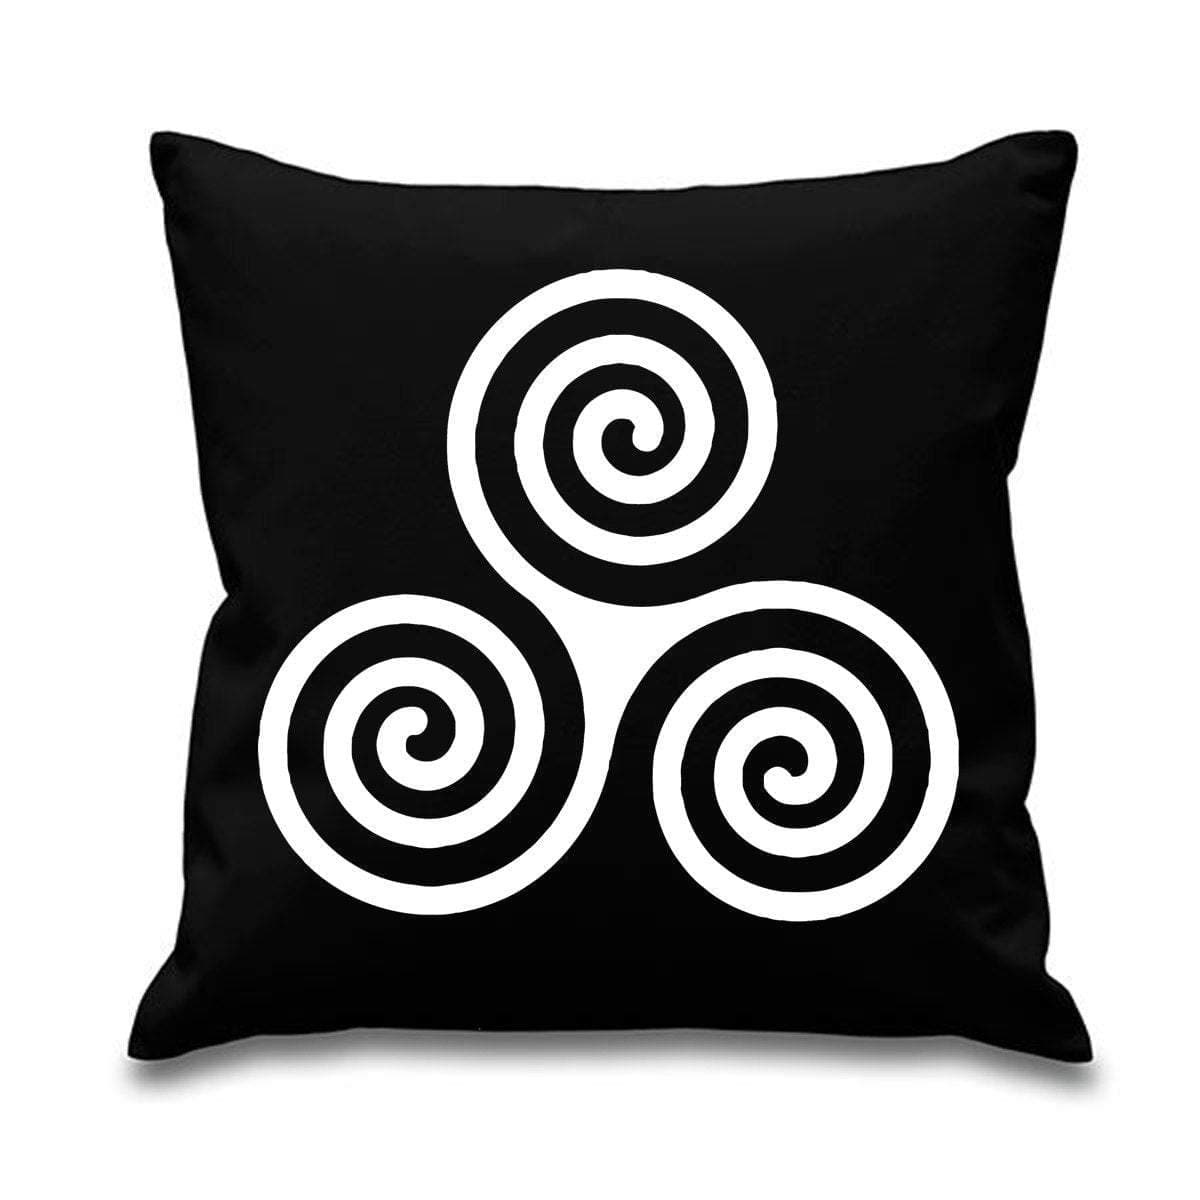 "Celtic Spiral 18"" x 18"" Sofa Throw Cushion Ancient Treasures Ancientreasures Viking Odin Thor Mjolnir Celtic Ancient Egypt Norse Norse Mythology"